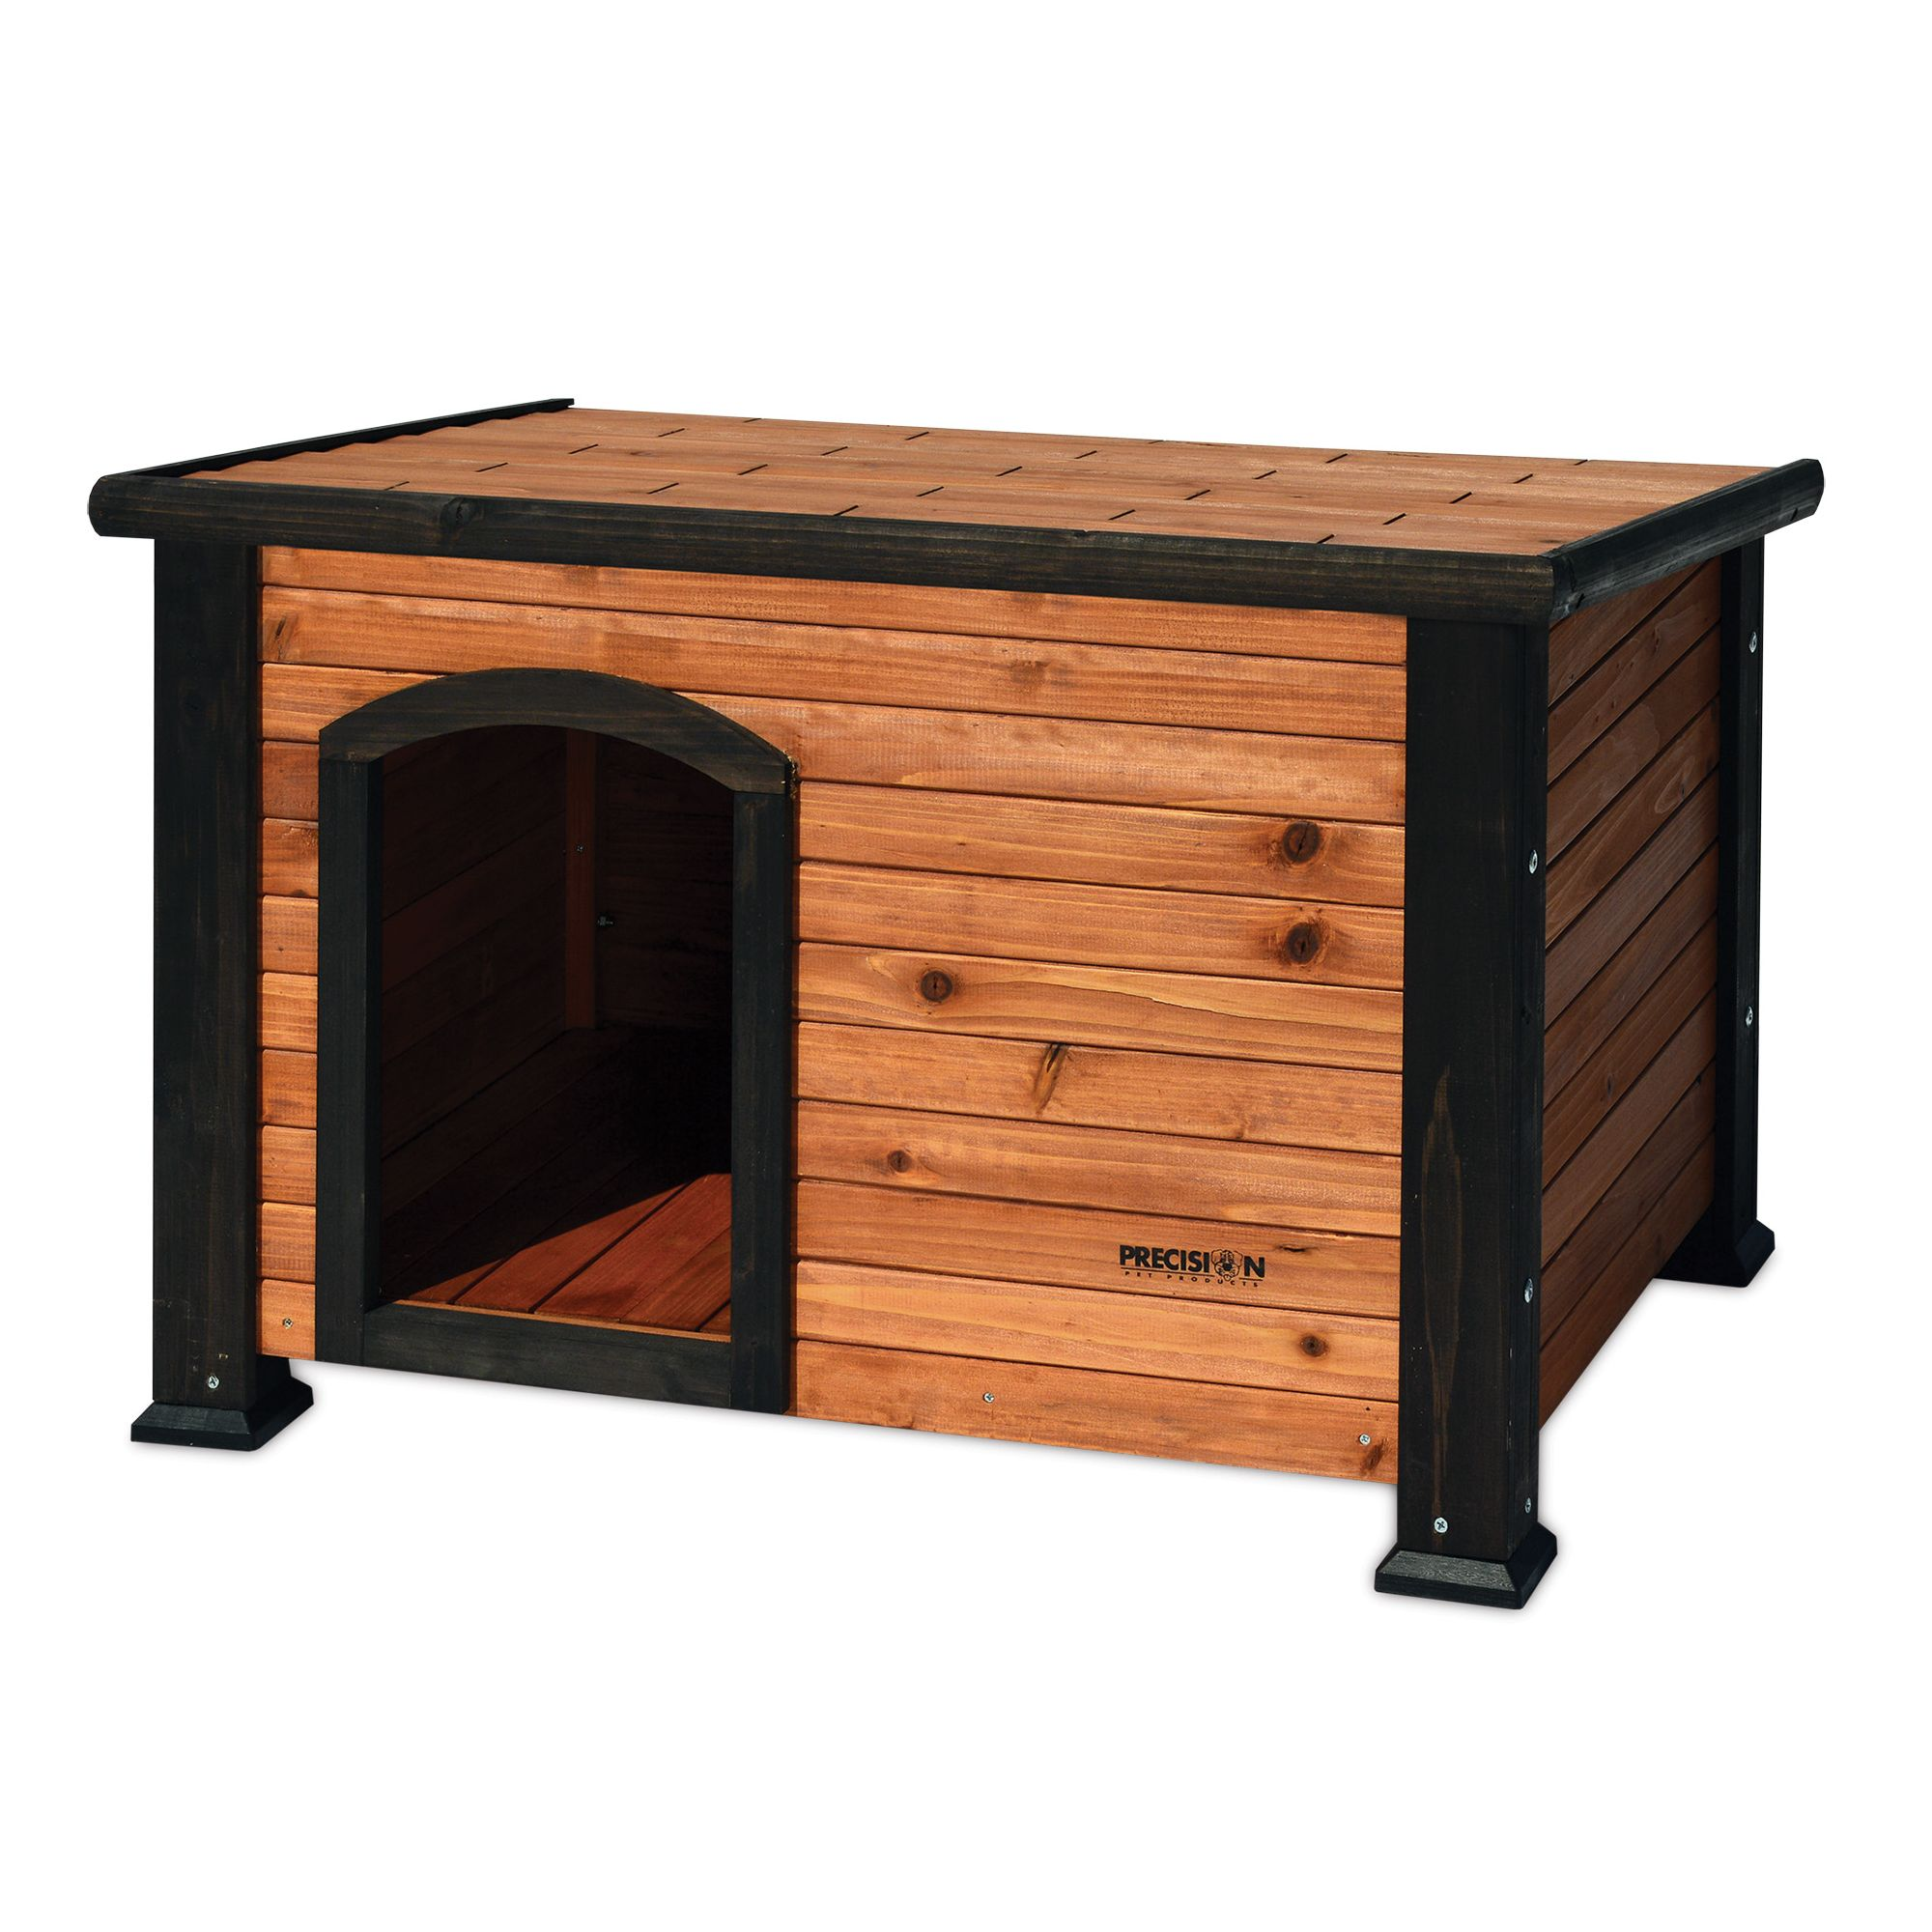 "Precision Pet Outback Log Cabin Dog House size: 45.5""L x 26.5""W x 27.5""H, Brown 5095721"